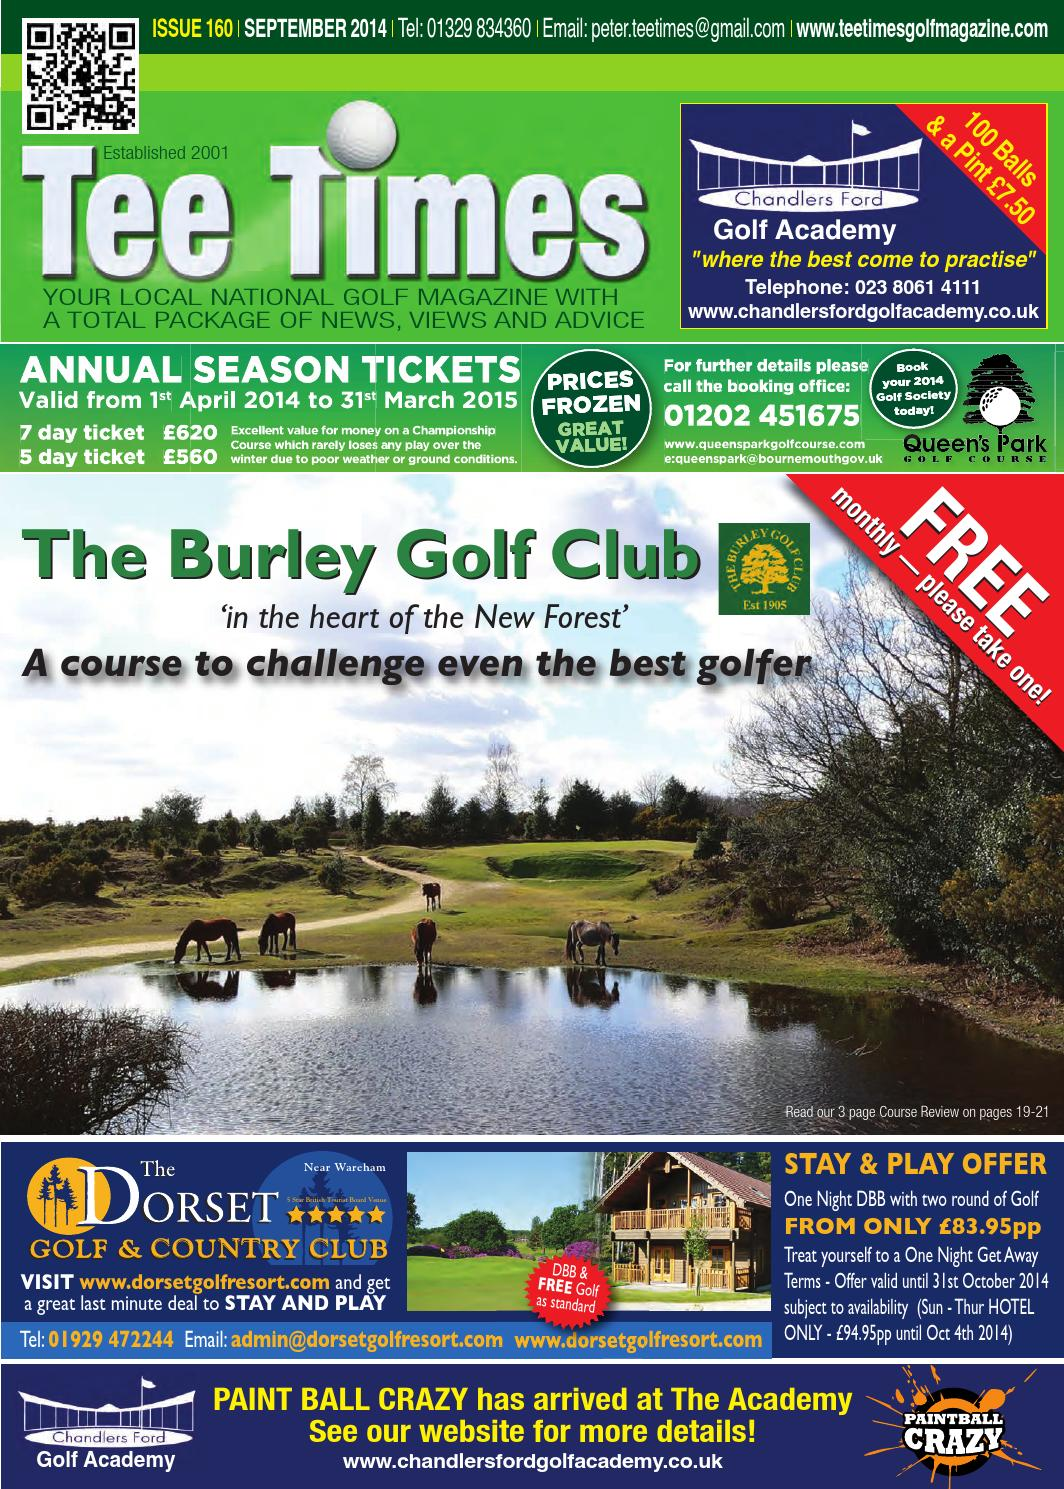 Tee Times Golf Magazine - September 2014 by Tee Times Golf ...